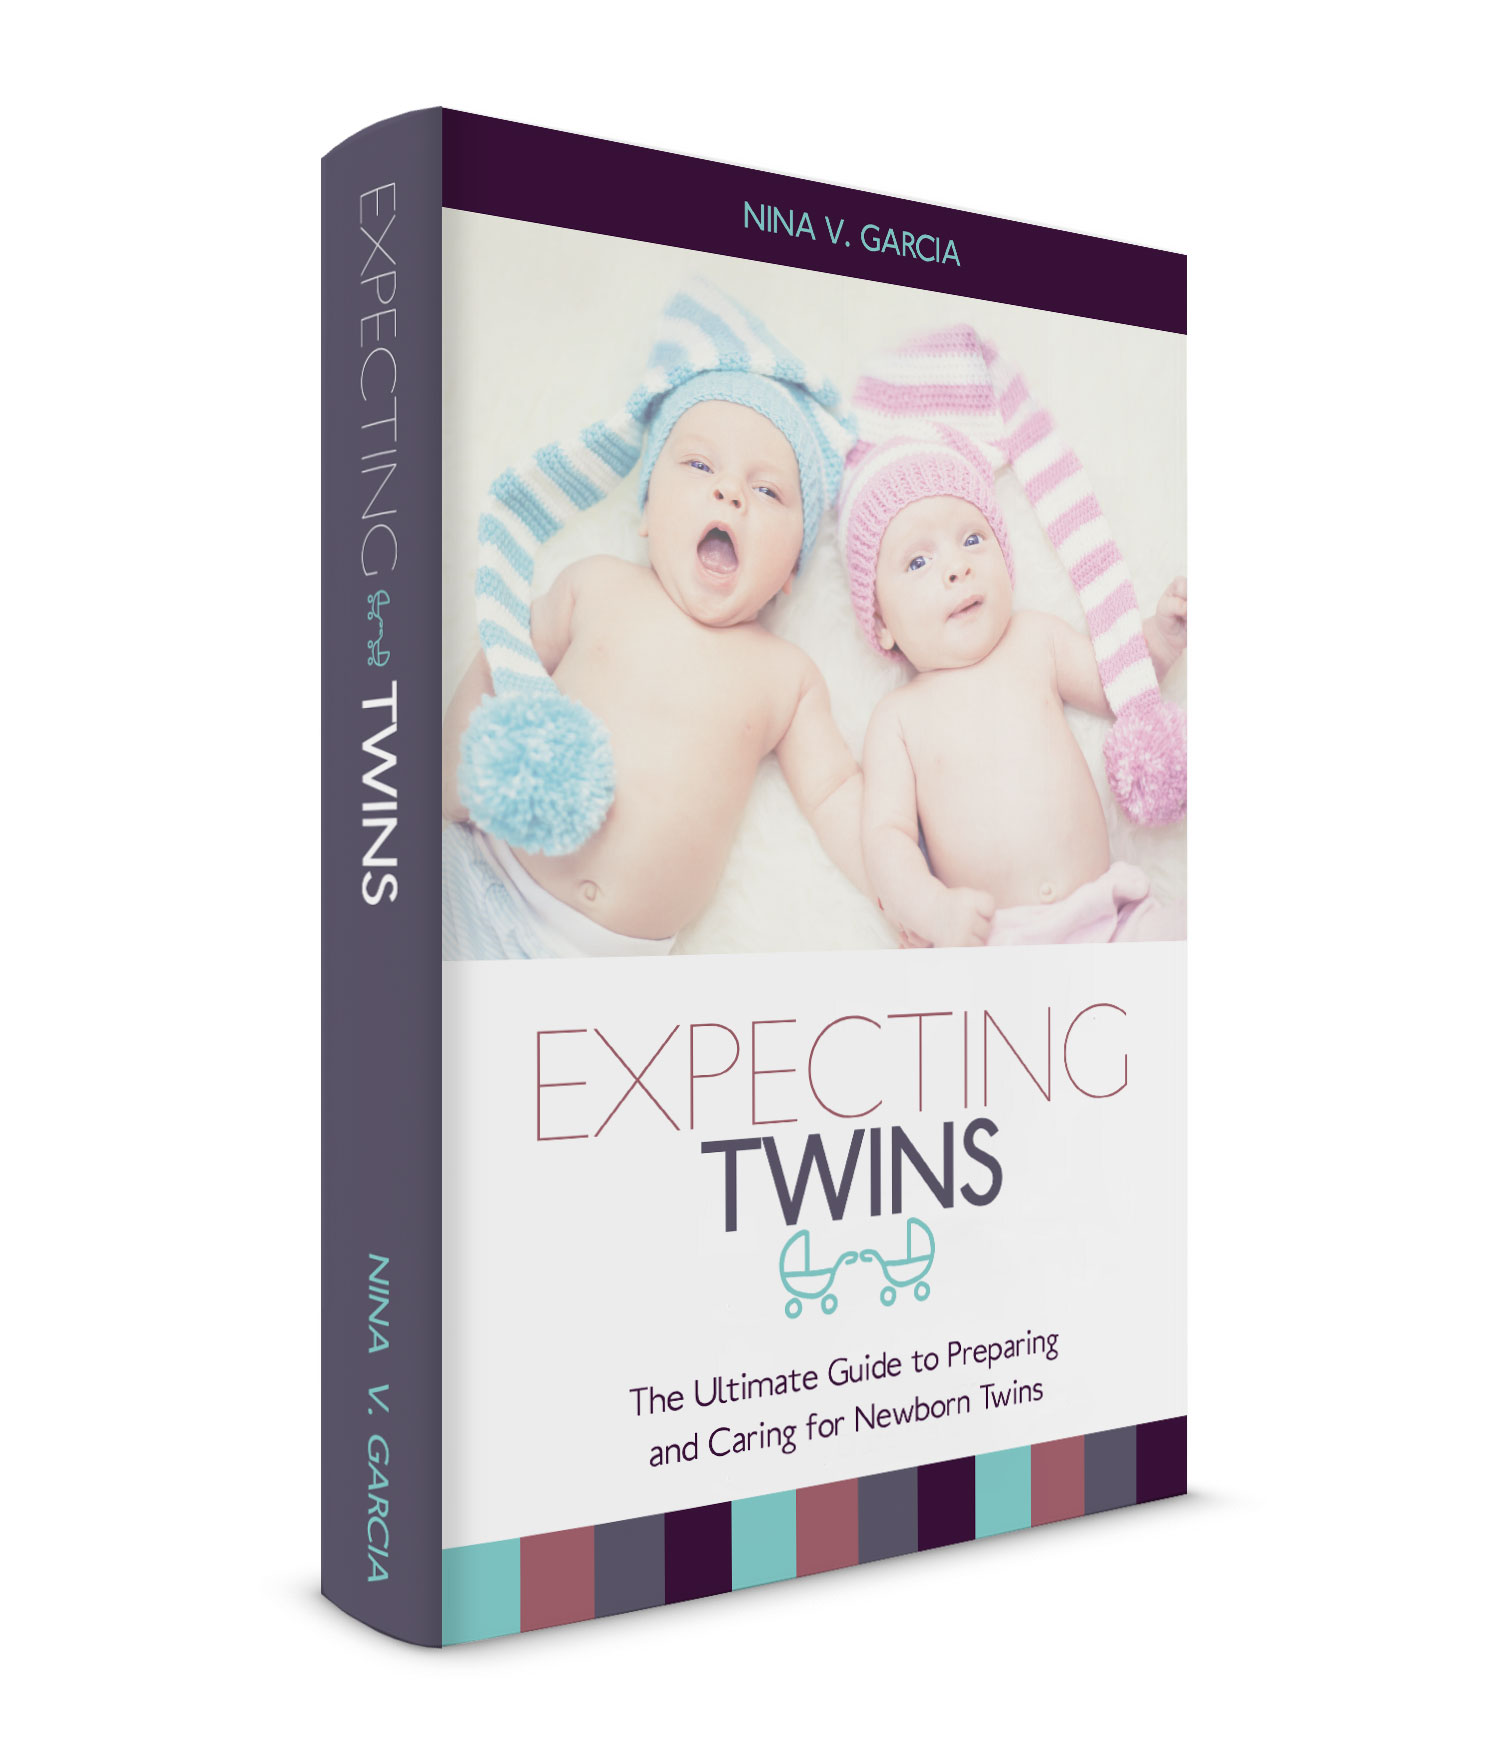 Expecting Twins: The Ultimate Guide to Preparing and Caring for Newborn Twins